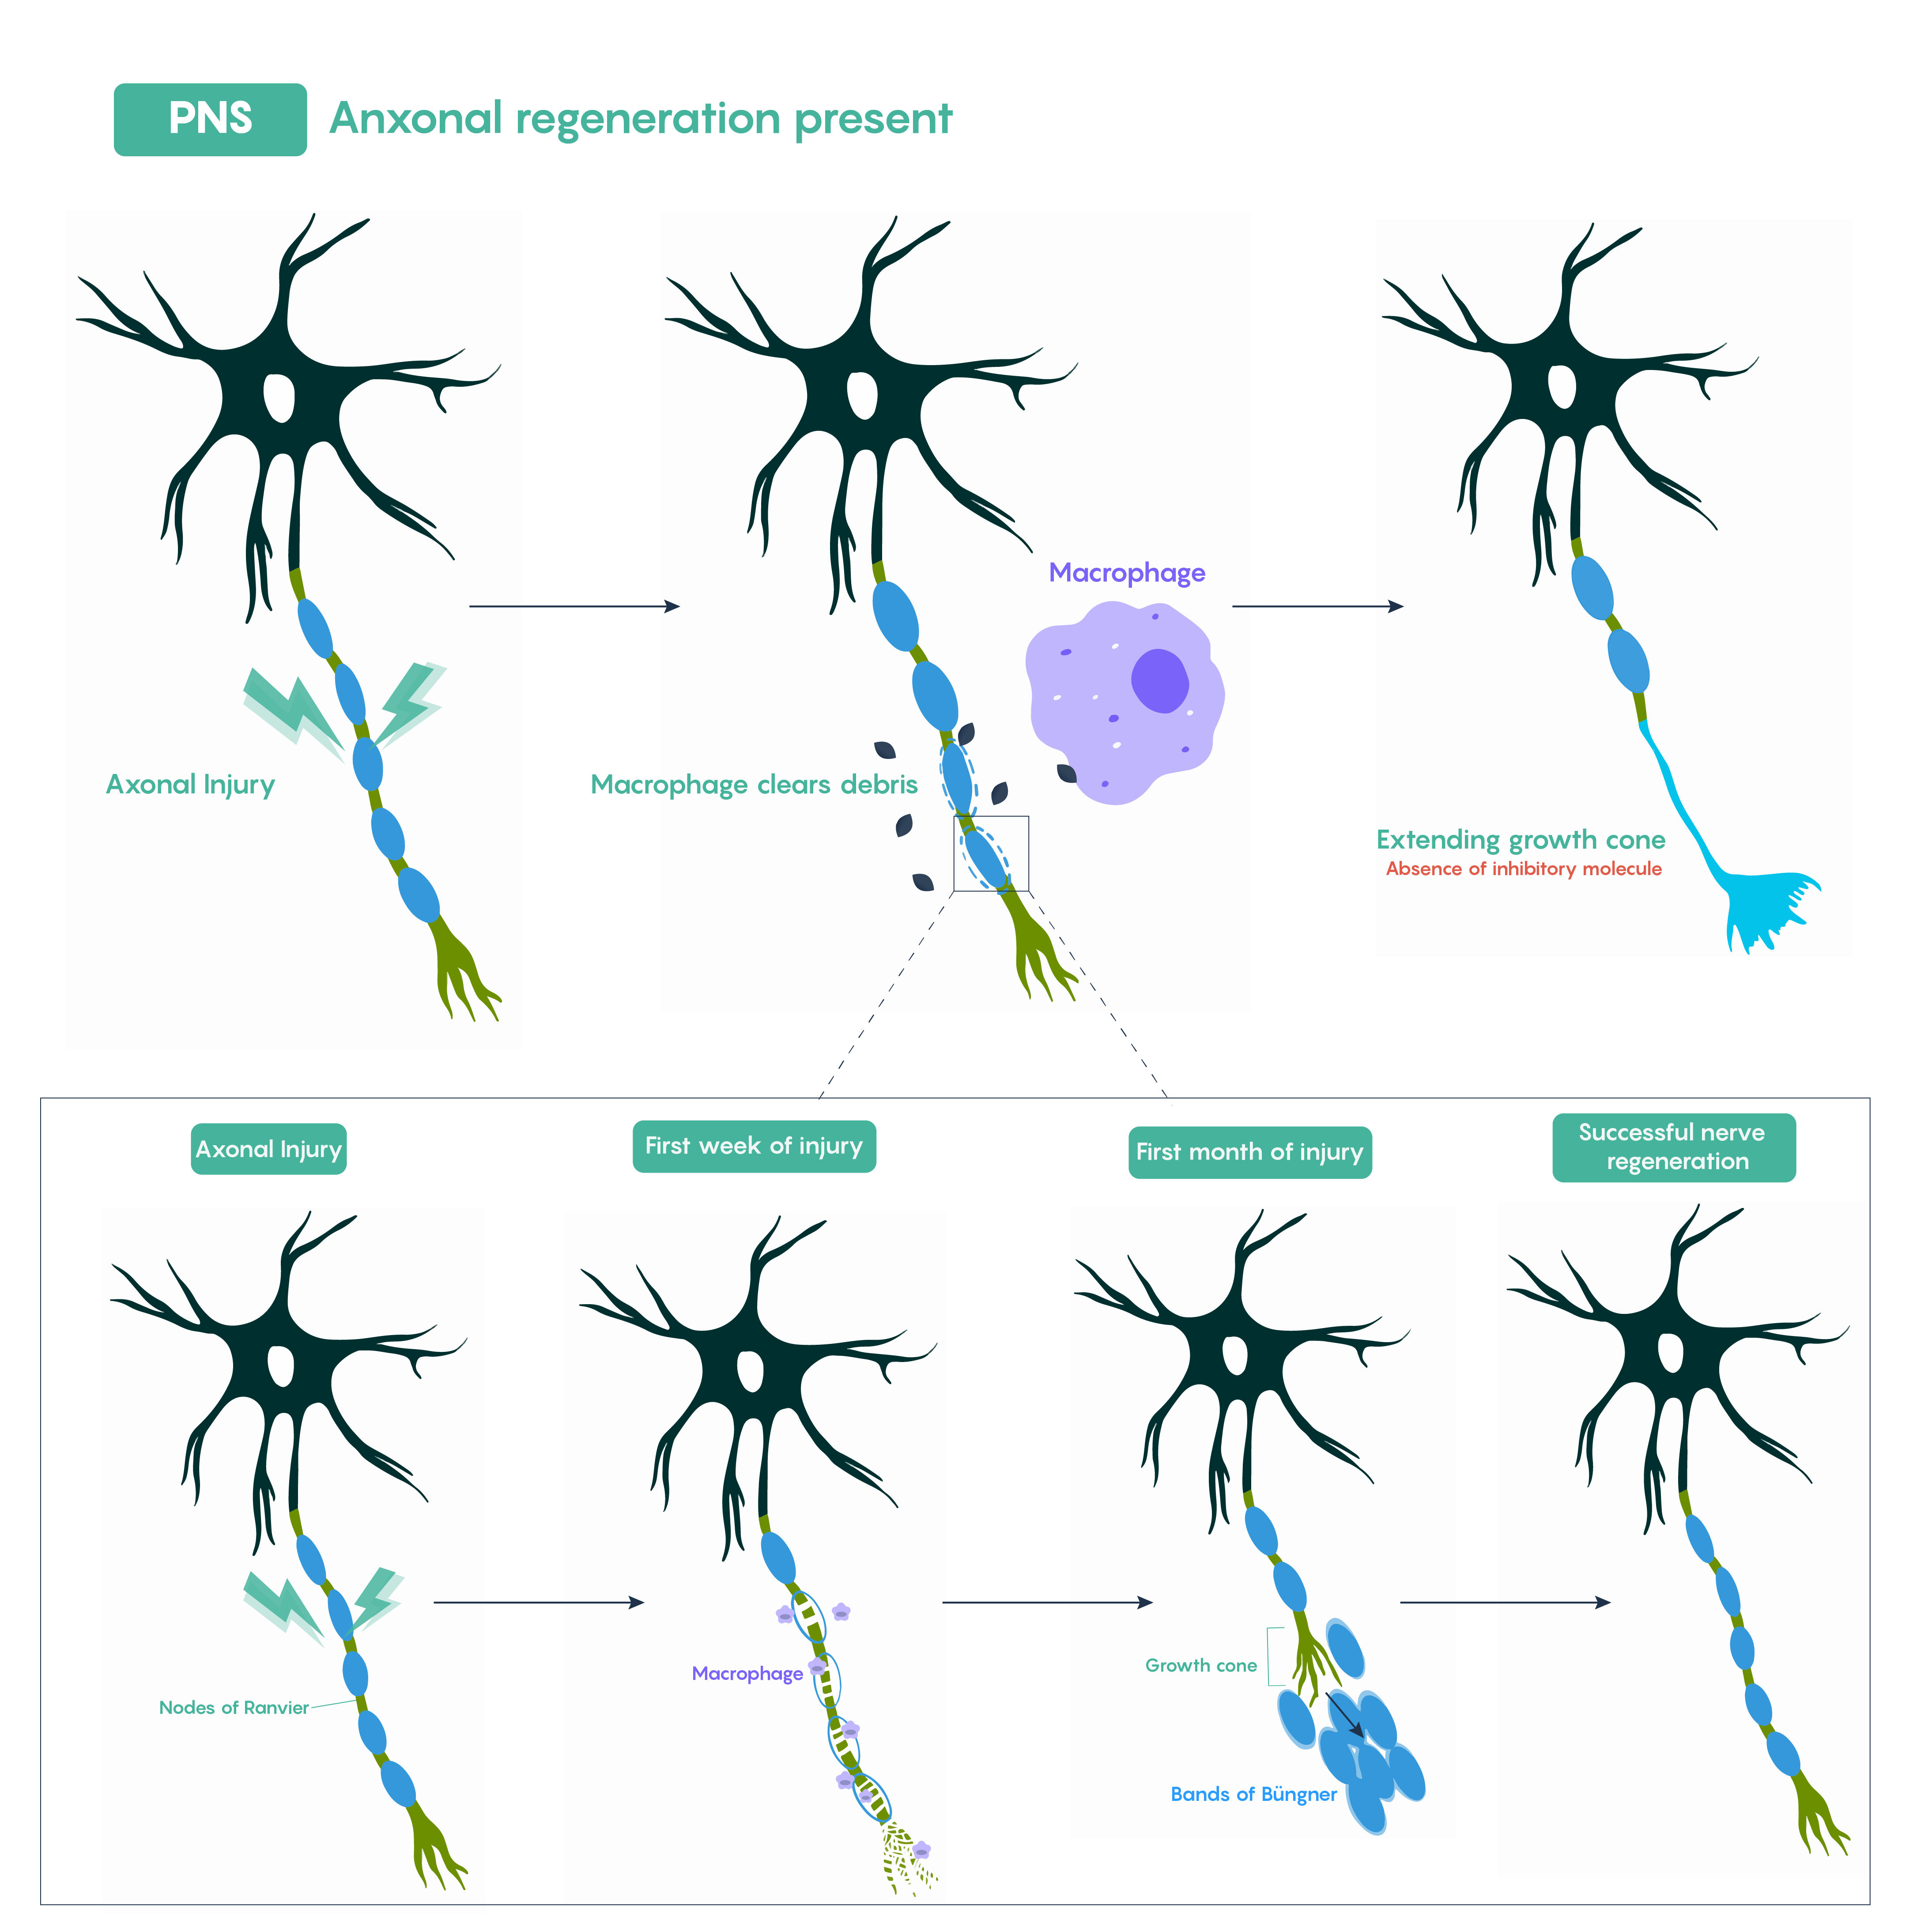 Image shows axonal regeneration in the PNS, with a closeup on the exact steps.